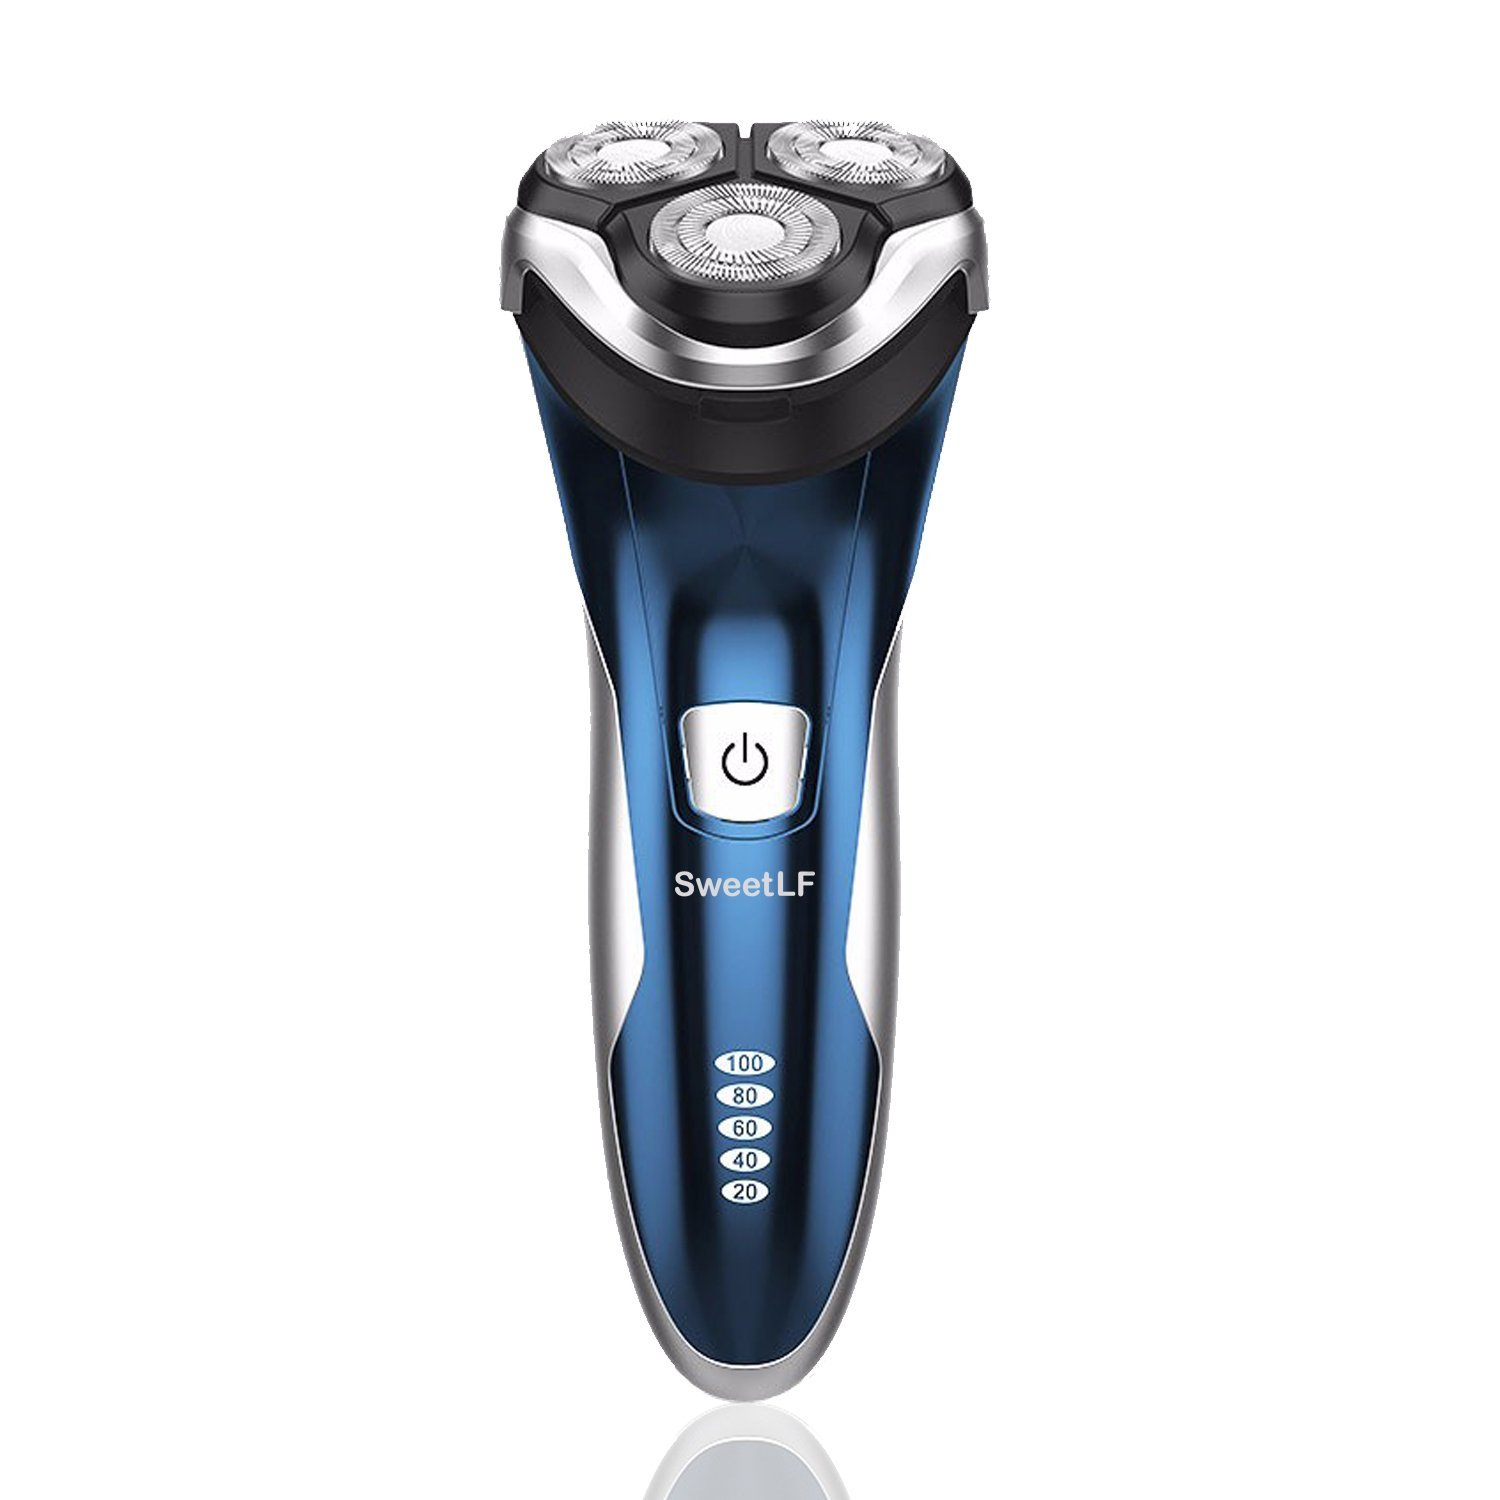 SweetLF Electric Shaver for Men